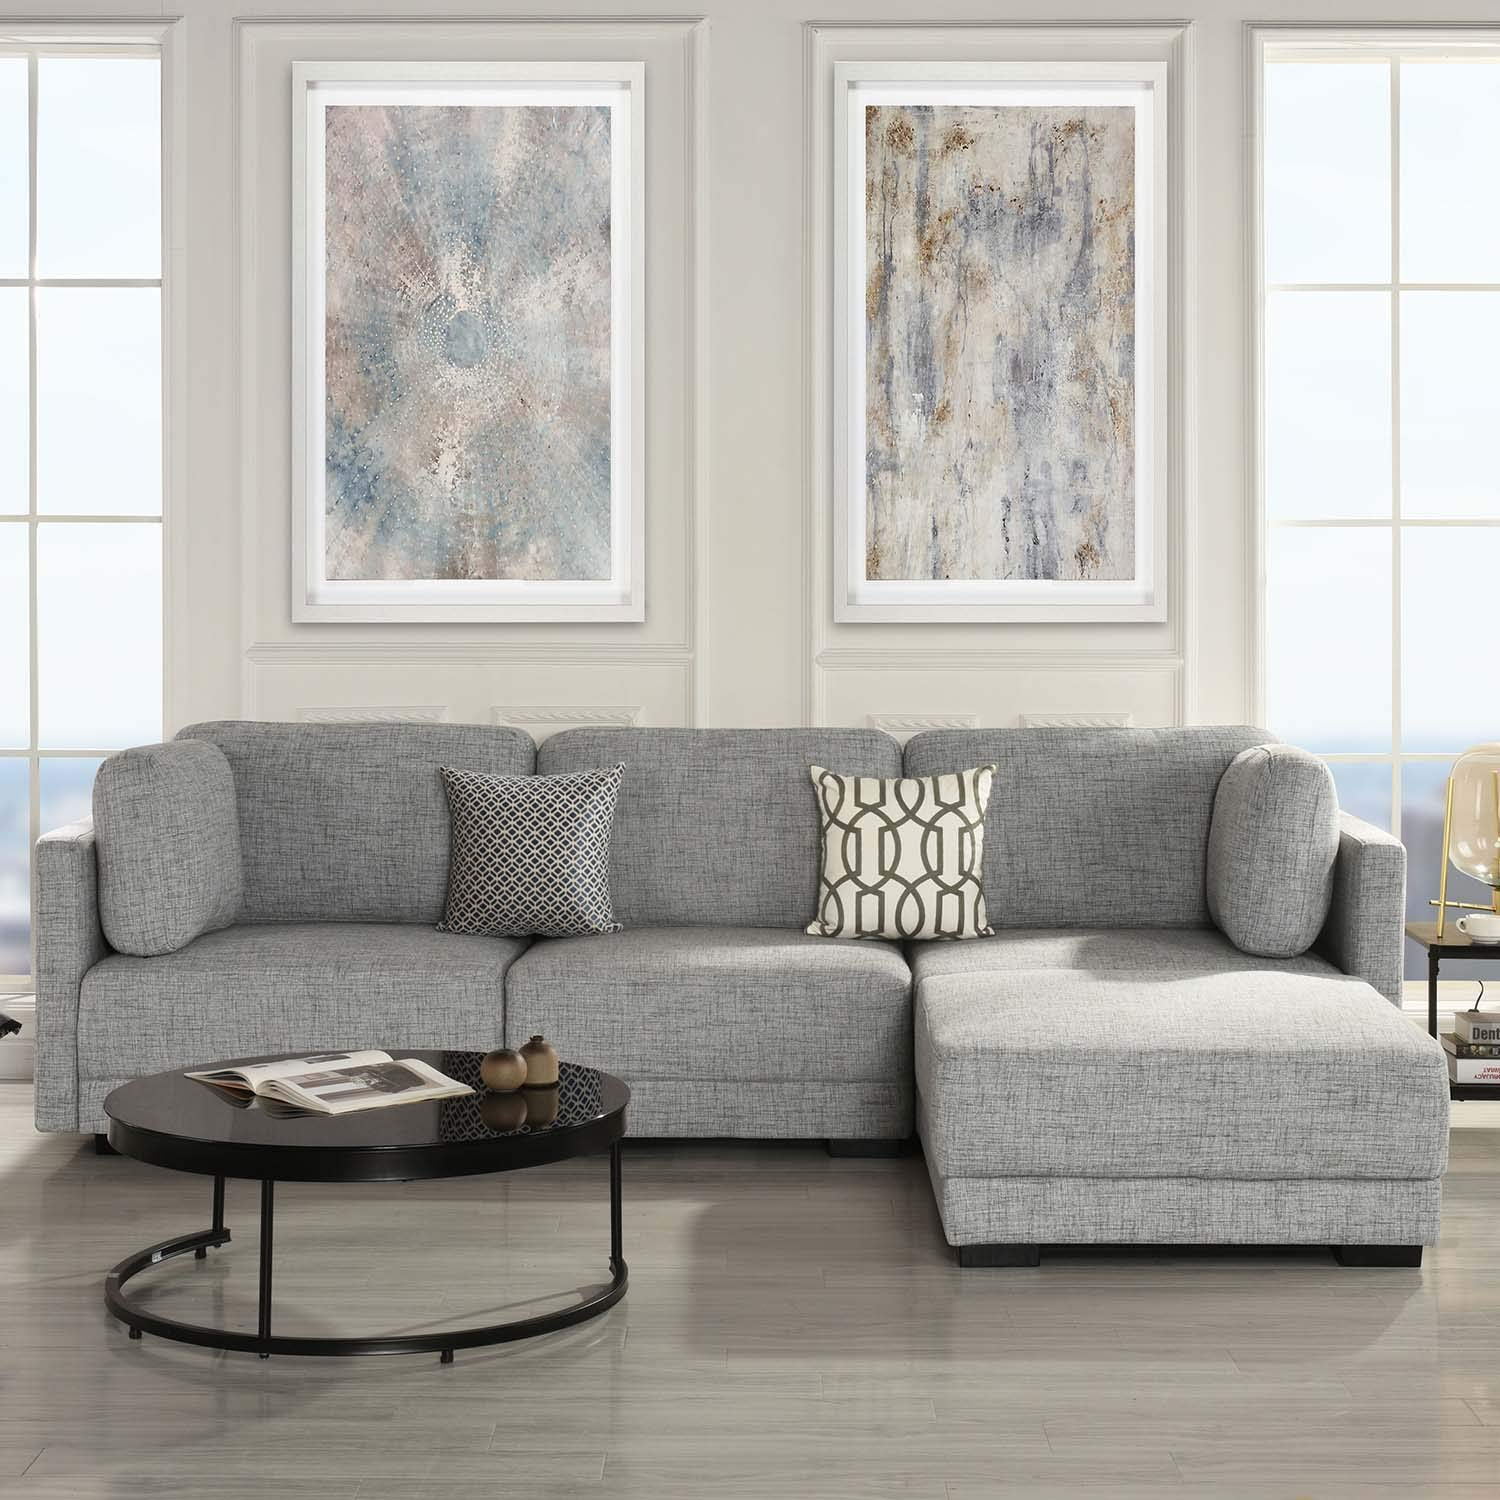 Modular Sectional Sofa Couch Convertible Sofa Sectional with Reversible  Chaise Ottoman 3 Piece (Custom Couch Feature) Modern L-Shaped Sectional  Sofa ...